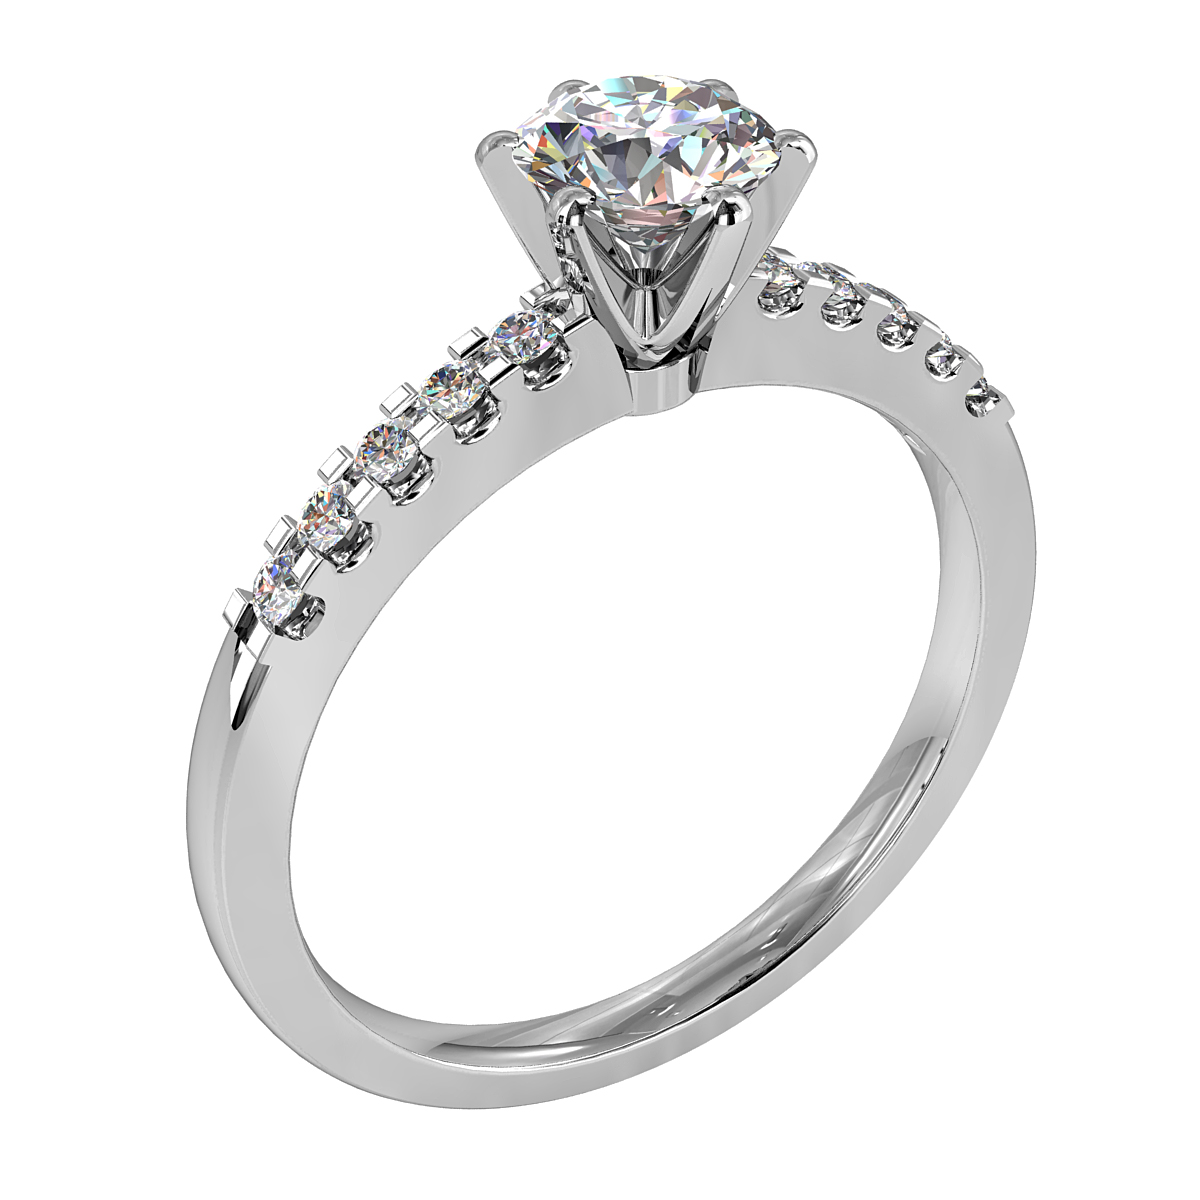 Round Brilliant Cut Solitaire Diamond Engagement Ring, 6 Button Claws Set on a Cut Claw Straight Band with Classic Undersetting.